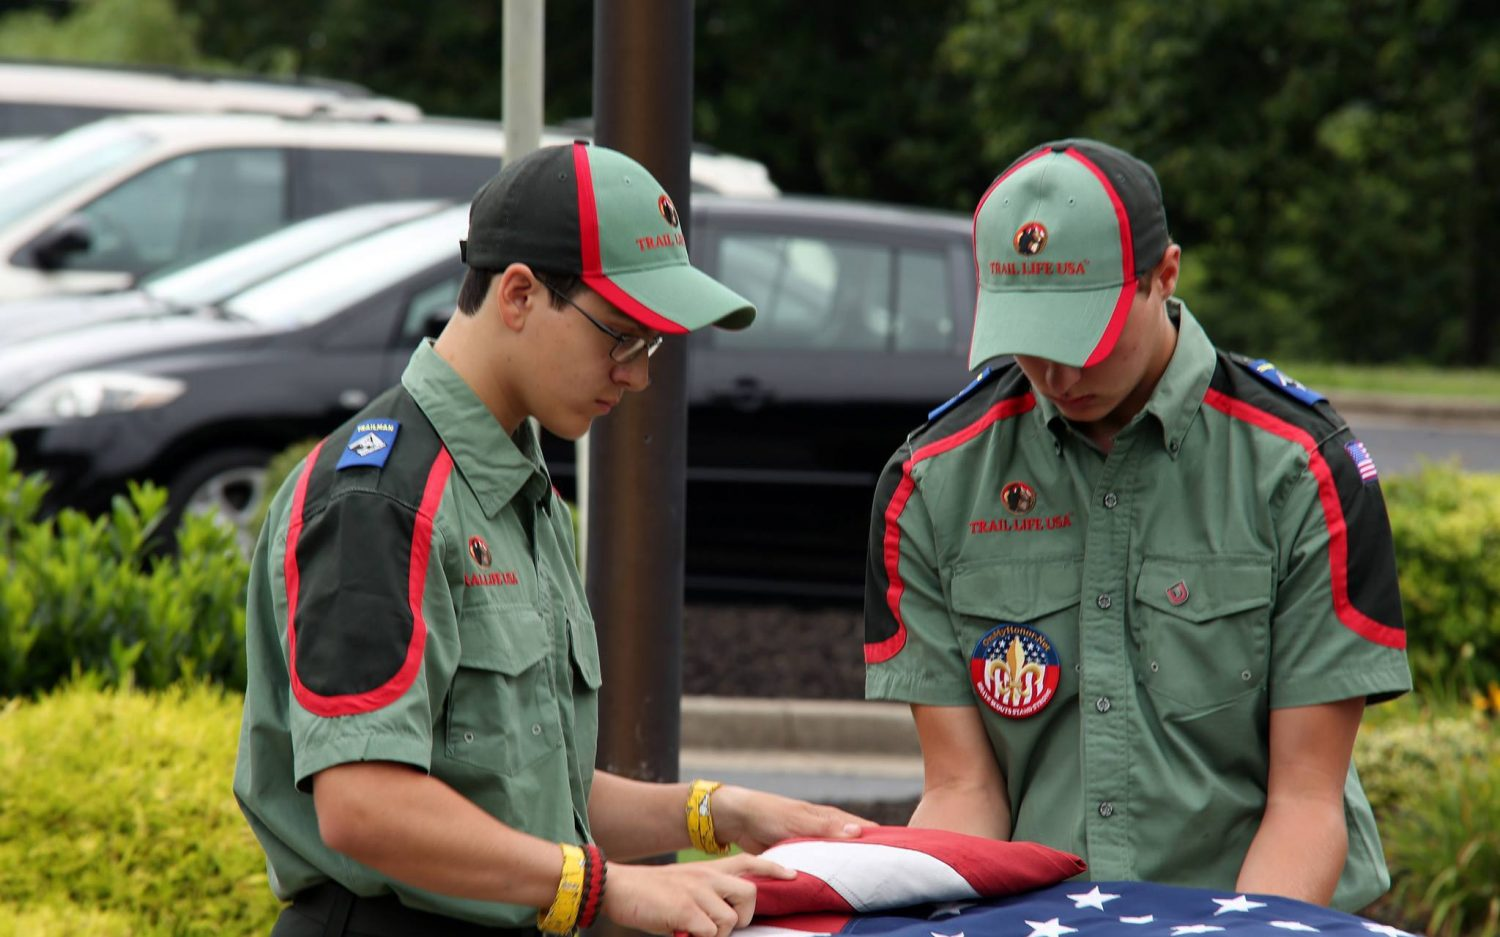 Christian scout group grows as BSA declines